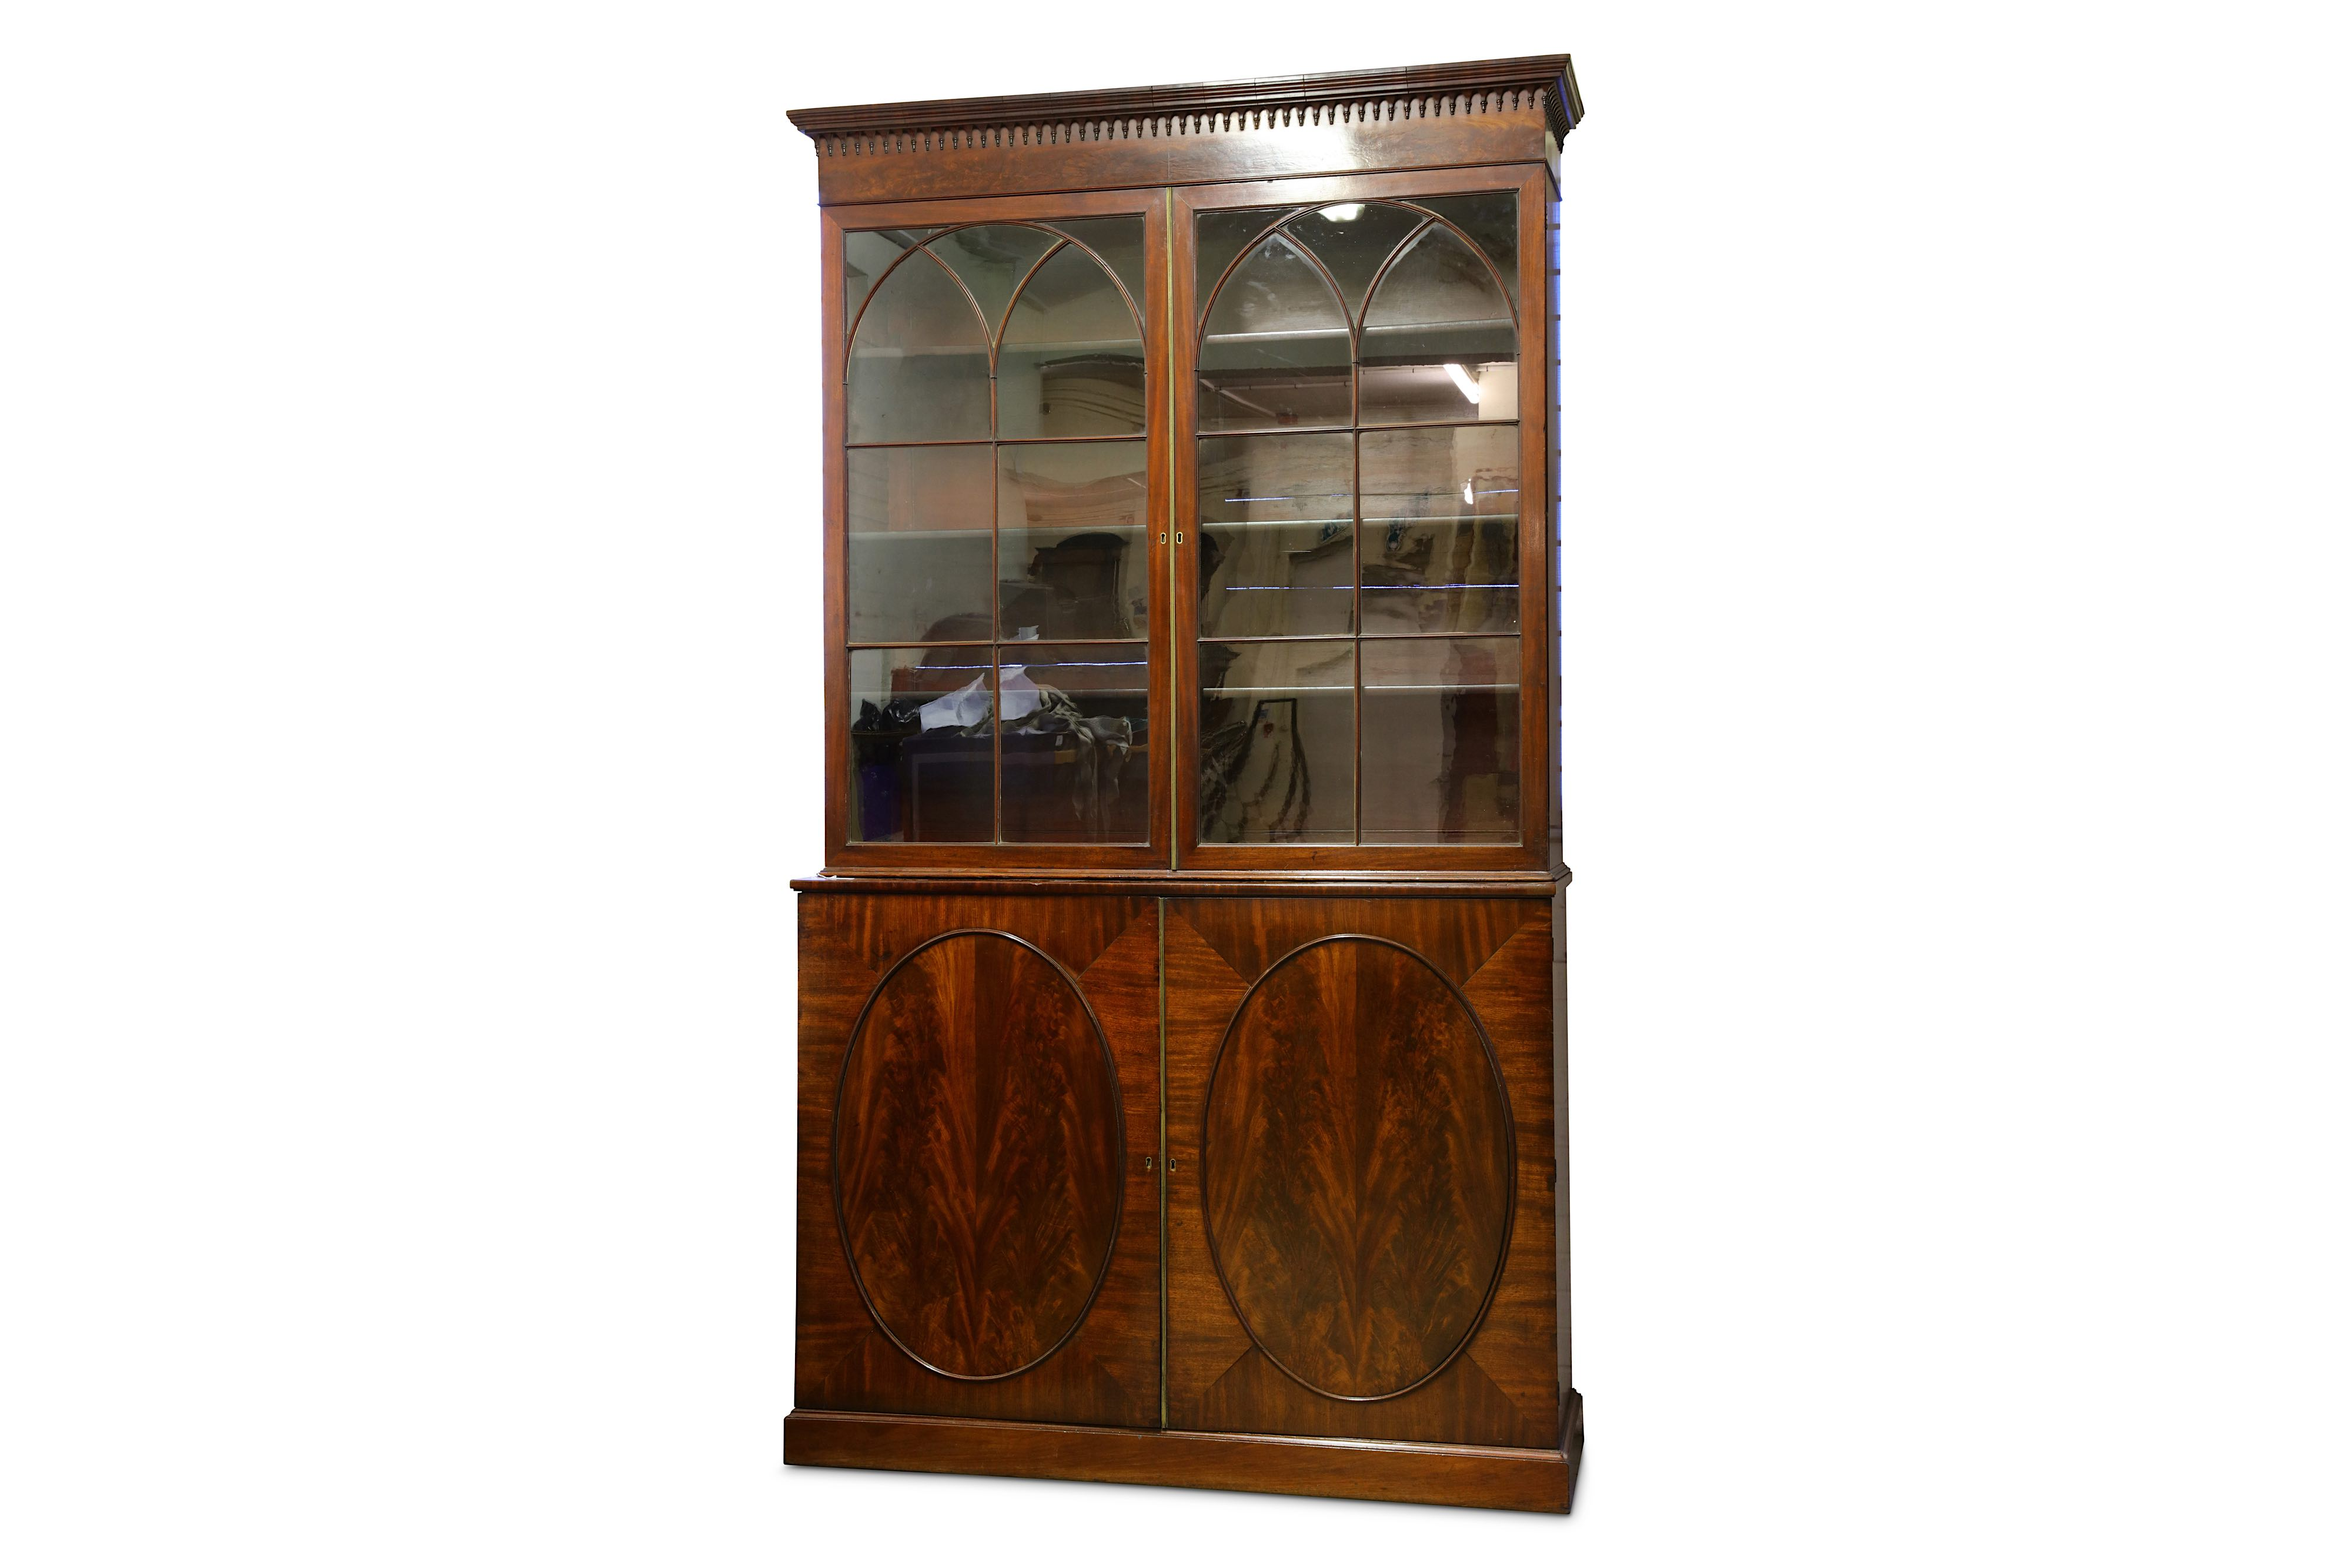 A GEORGE III MAHOGANY COLLECTOR'S CABINET, CIRCA 1810 - Image 2 of 4